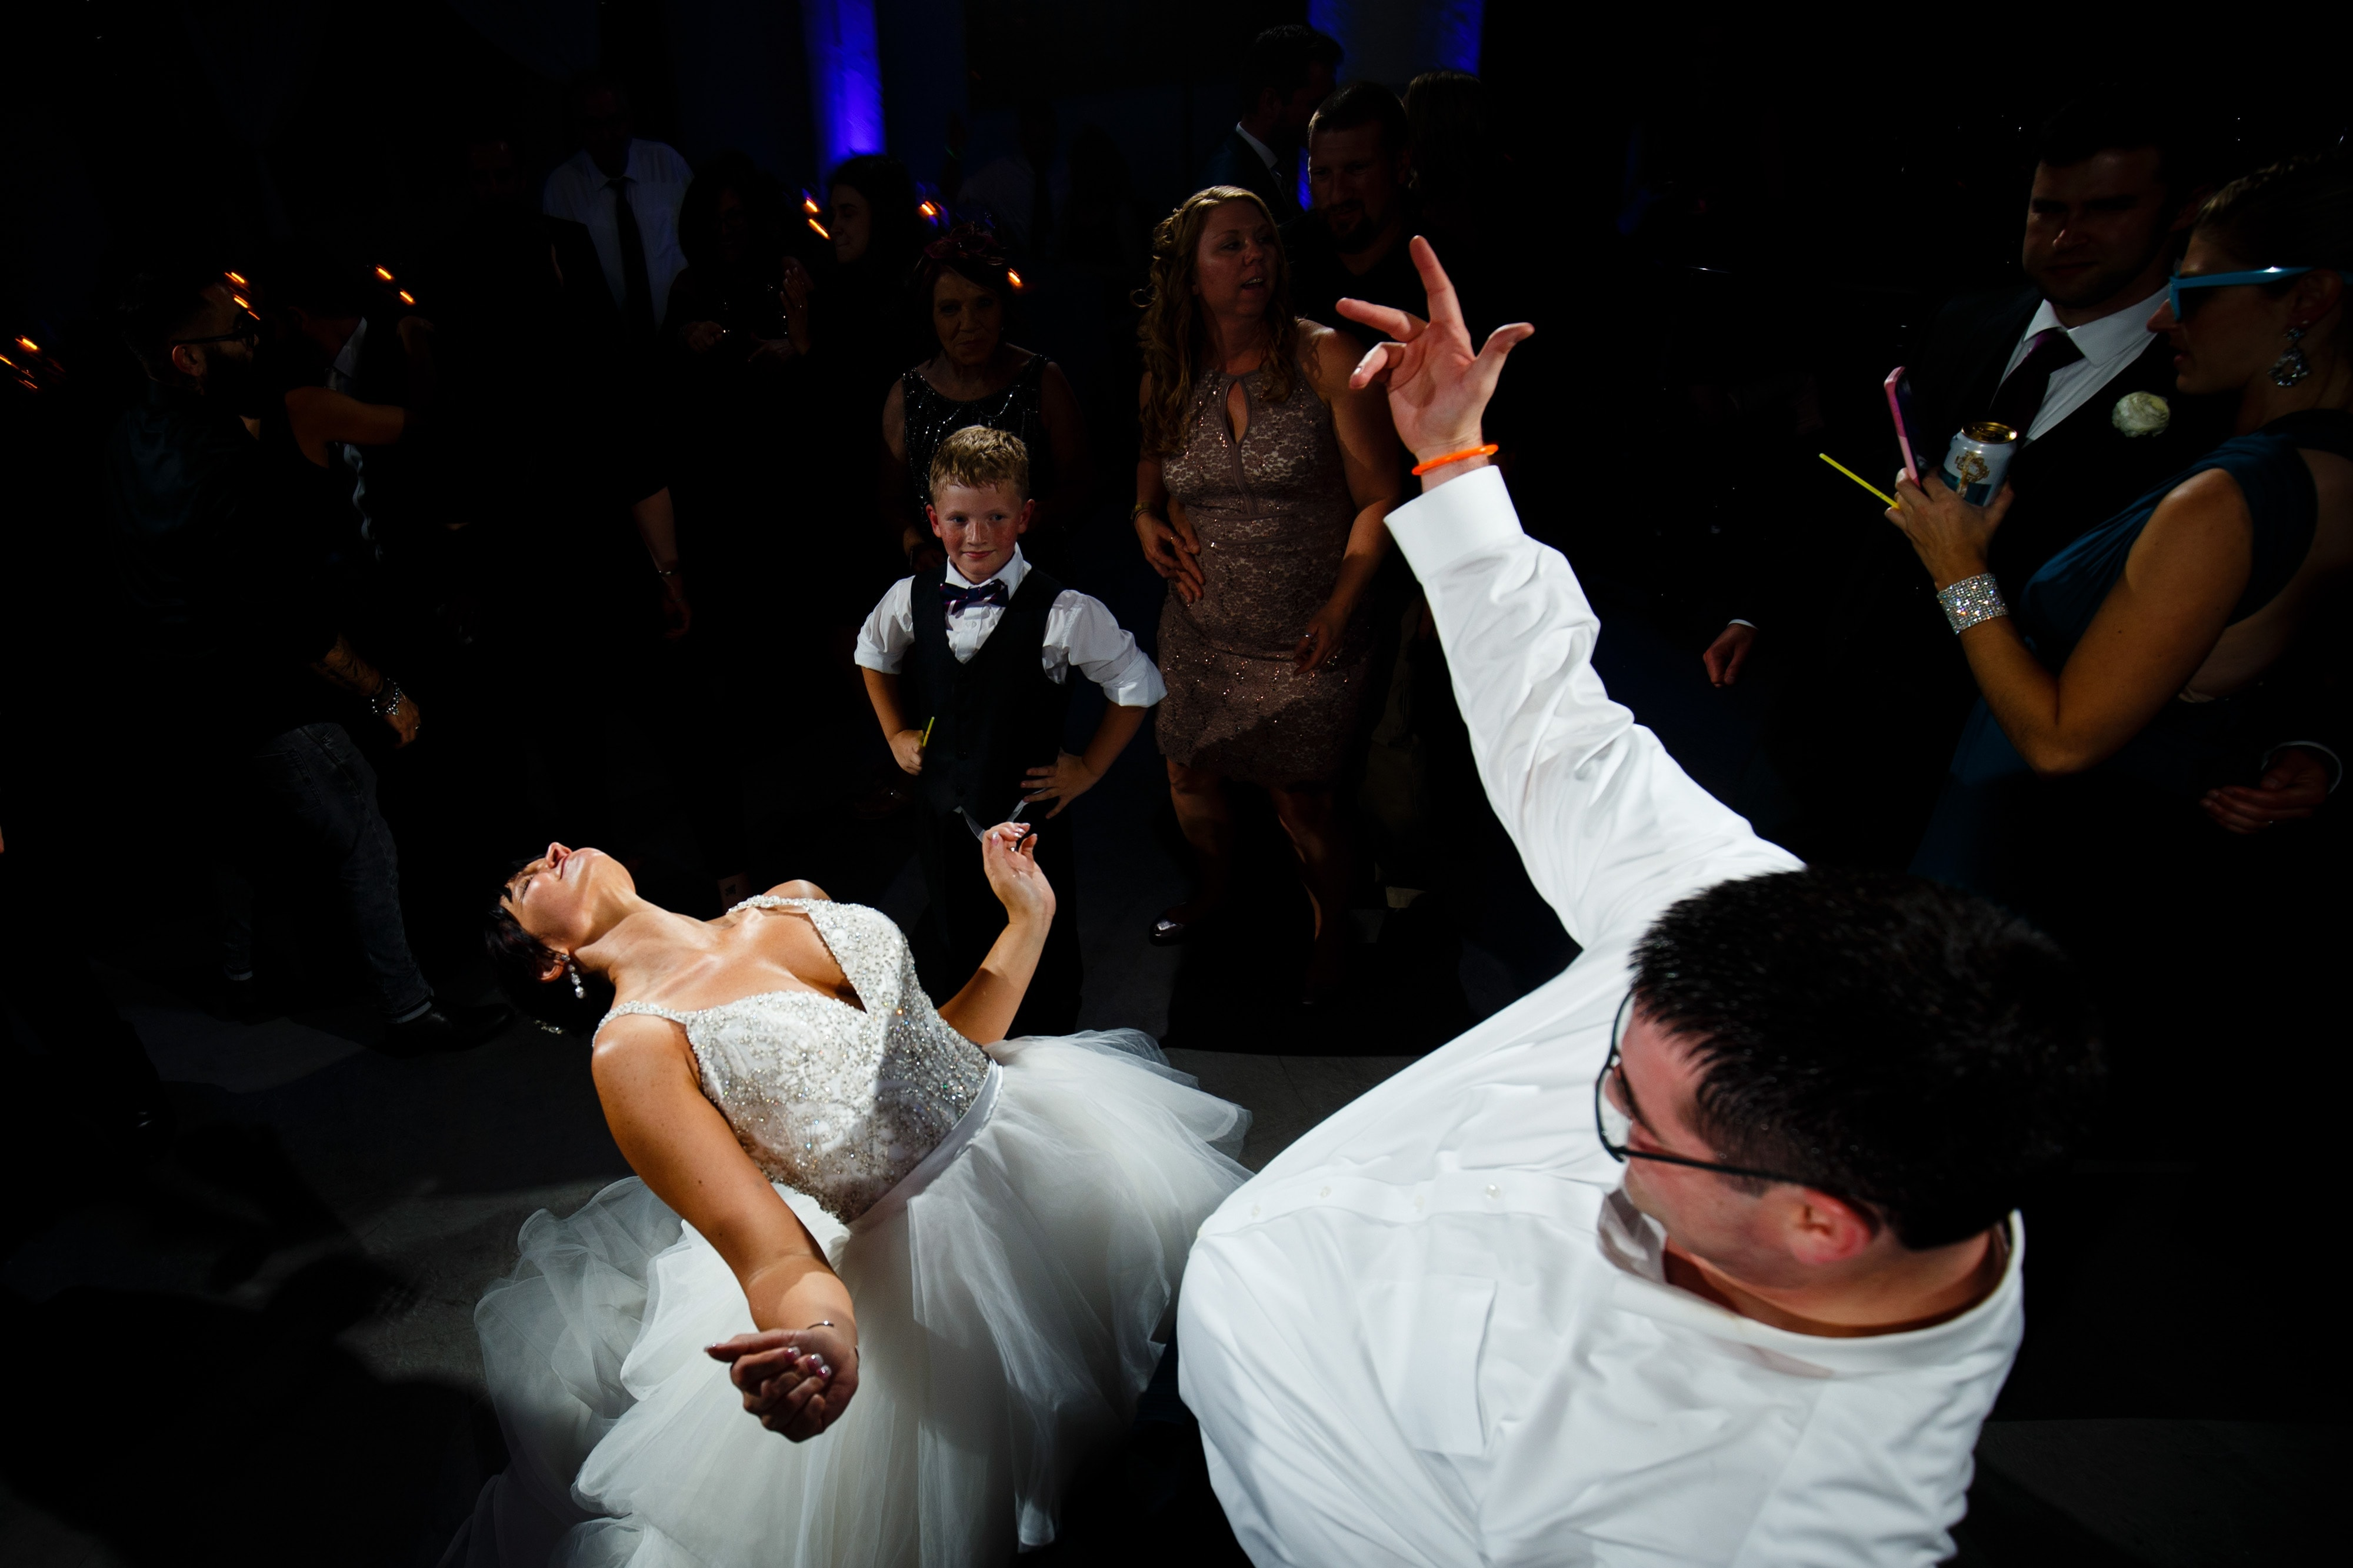 Guests dance during a wedding at Room 1520